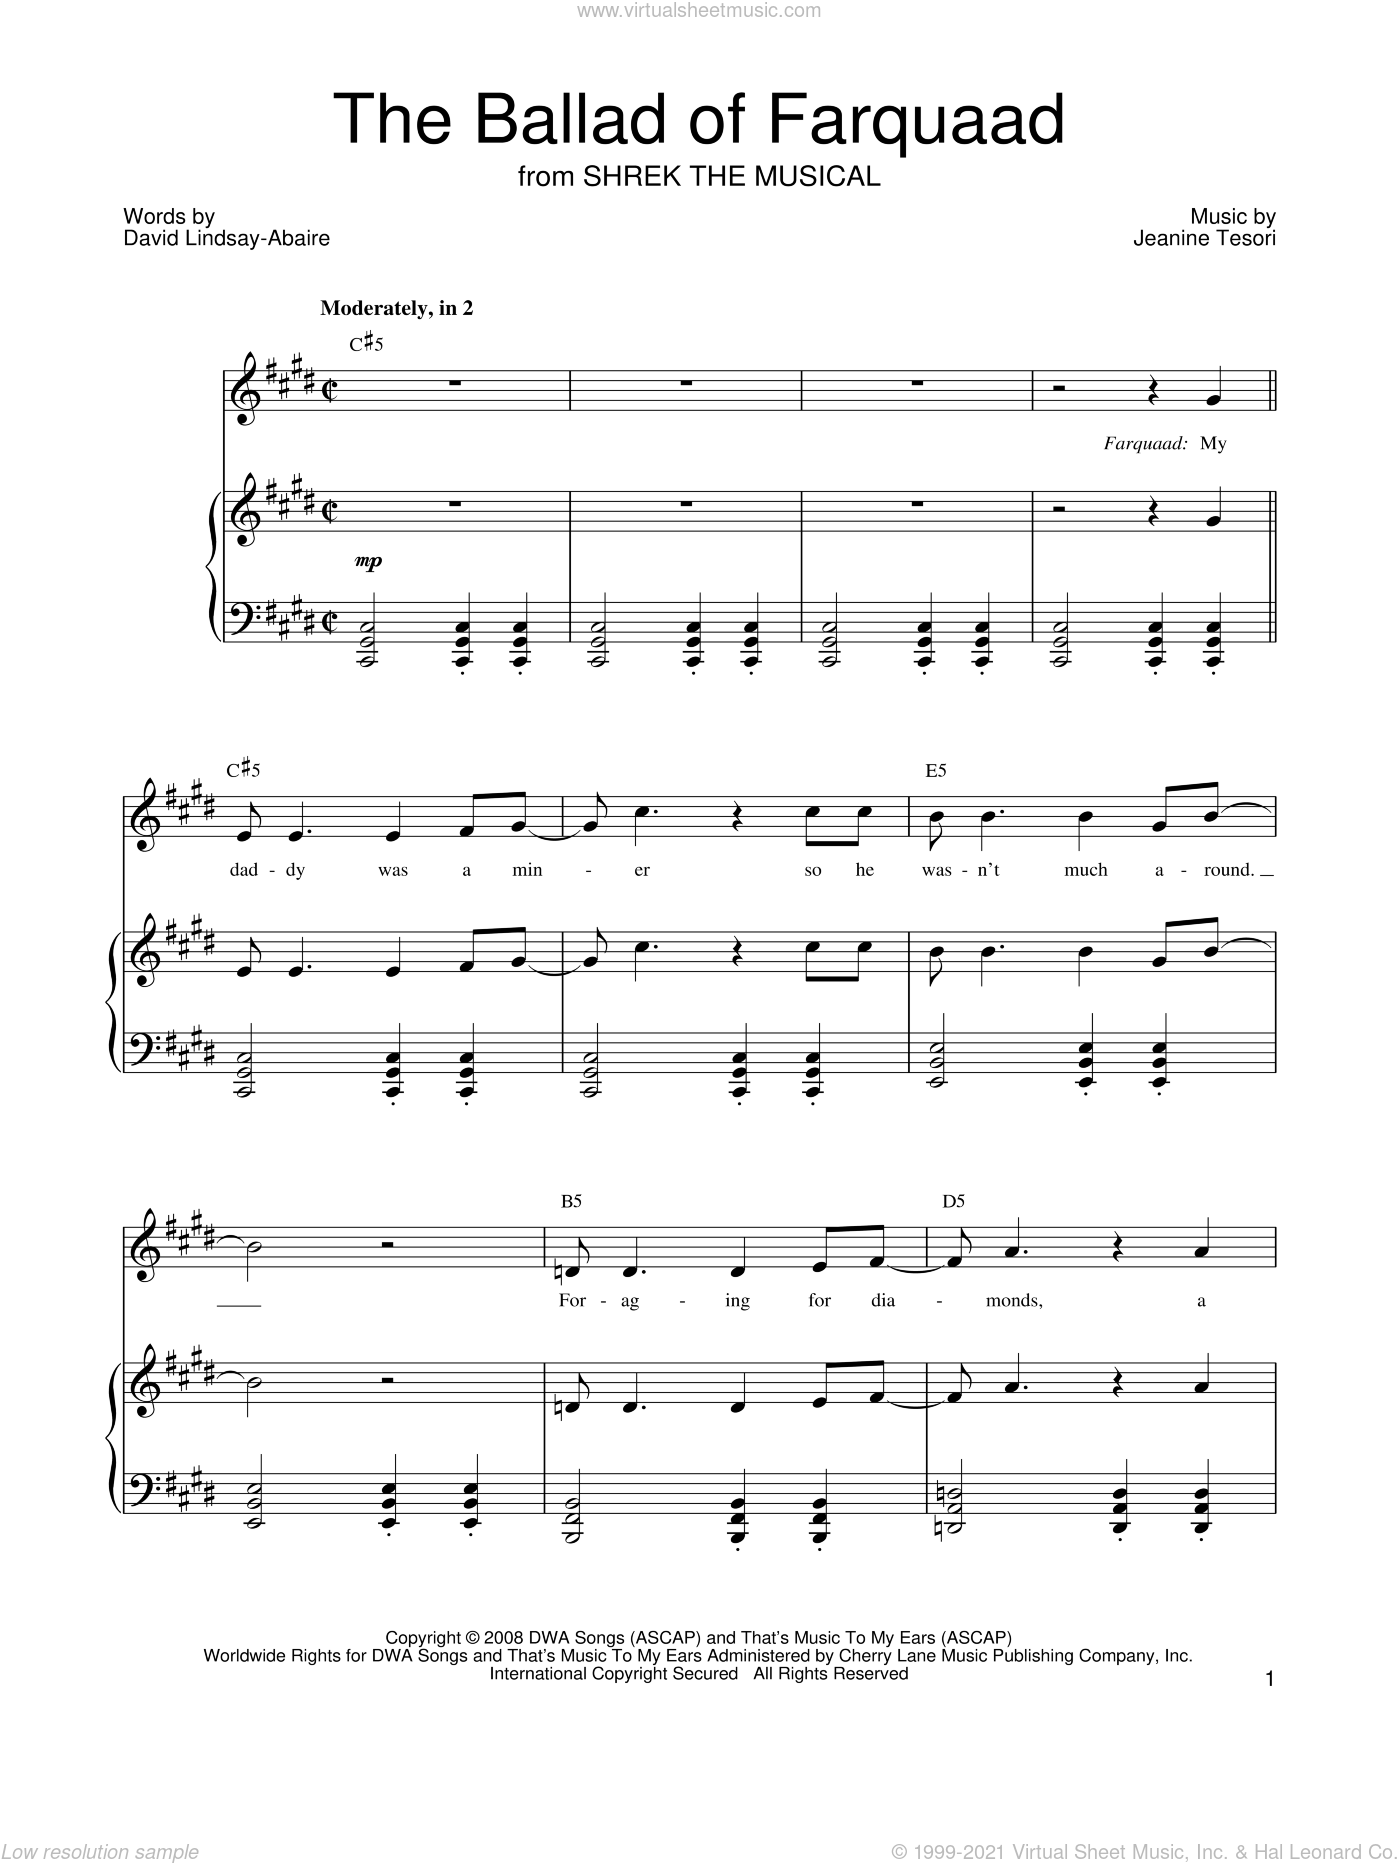 The Ballad of Farquaad sheet music for voice, piano or guitar by Shrek The Musical, David Lindsay-Abaire and Jeanine Tesori. Score Image Preview.